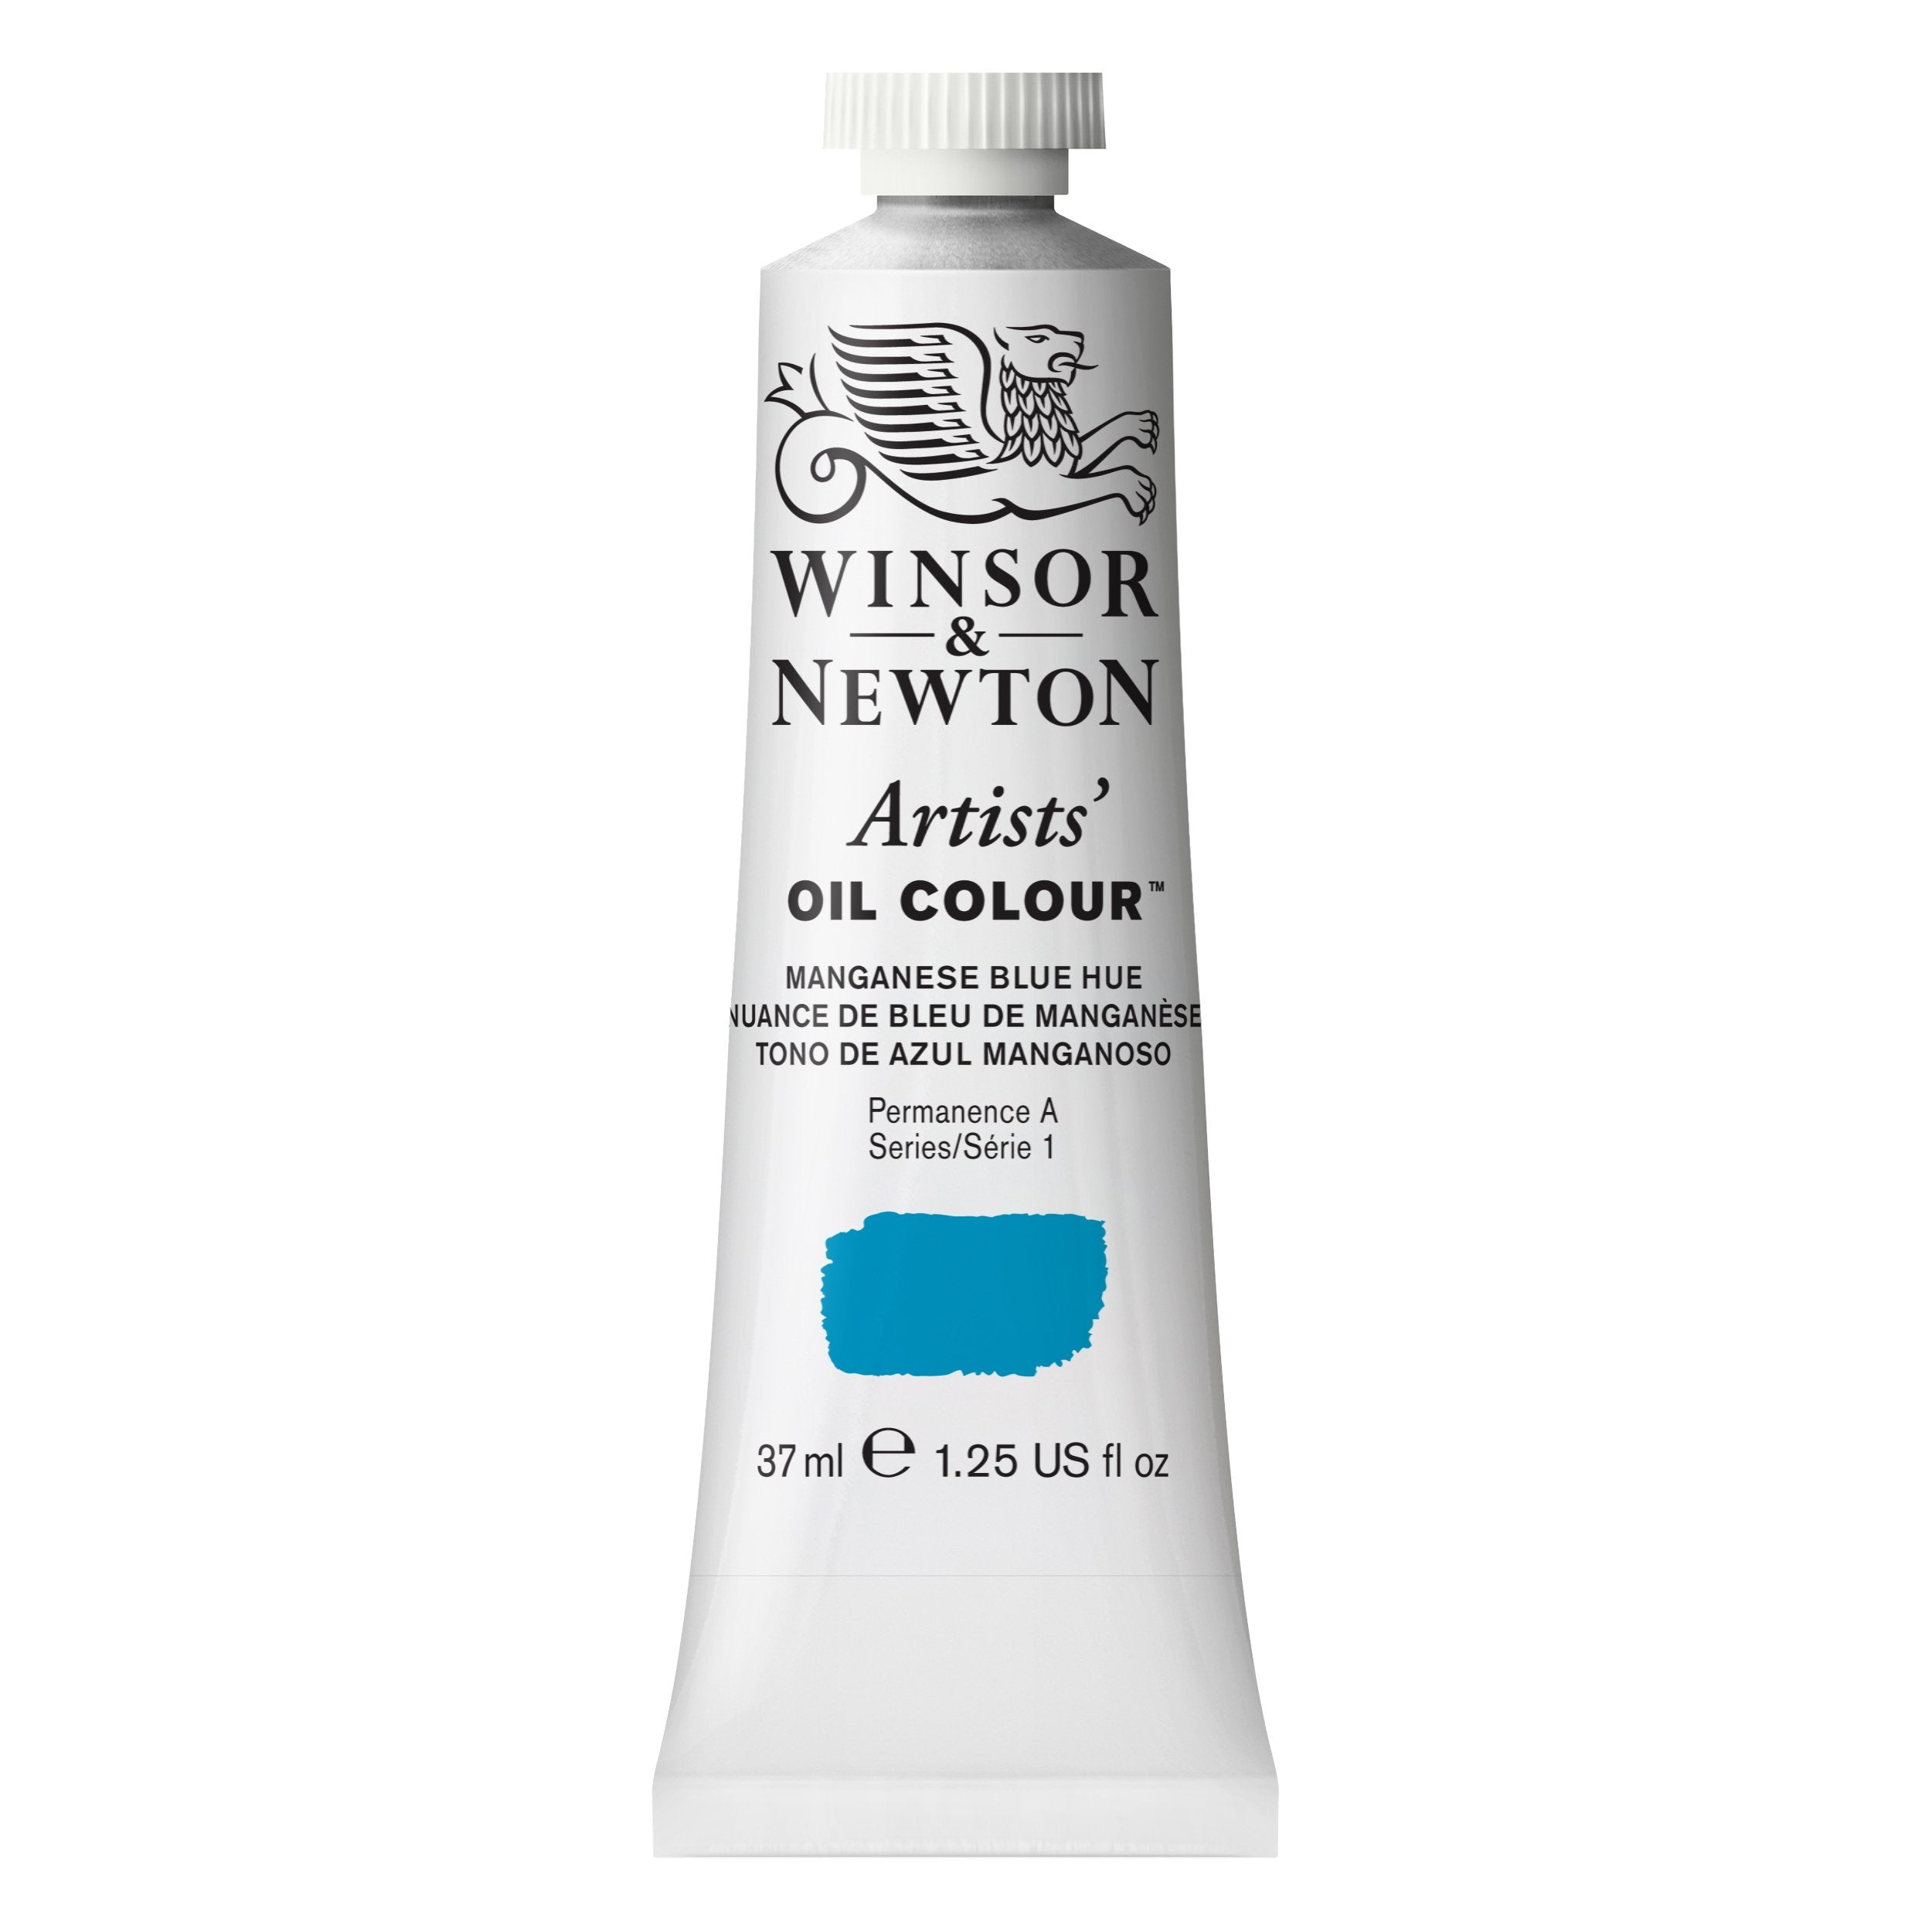 Winsor & Newton Artists' Oil Color, 37ml, Manganese Blue Hue